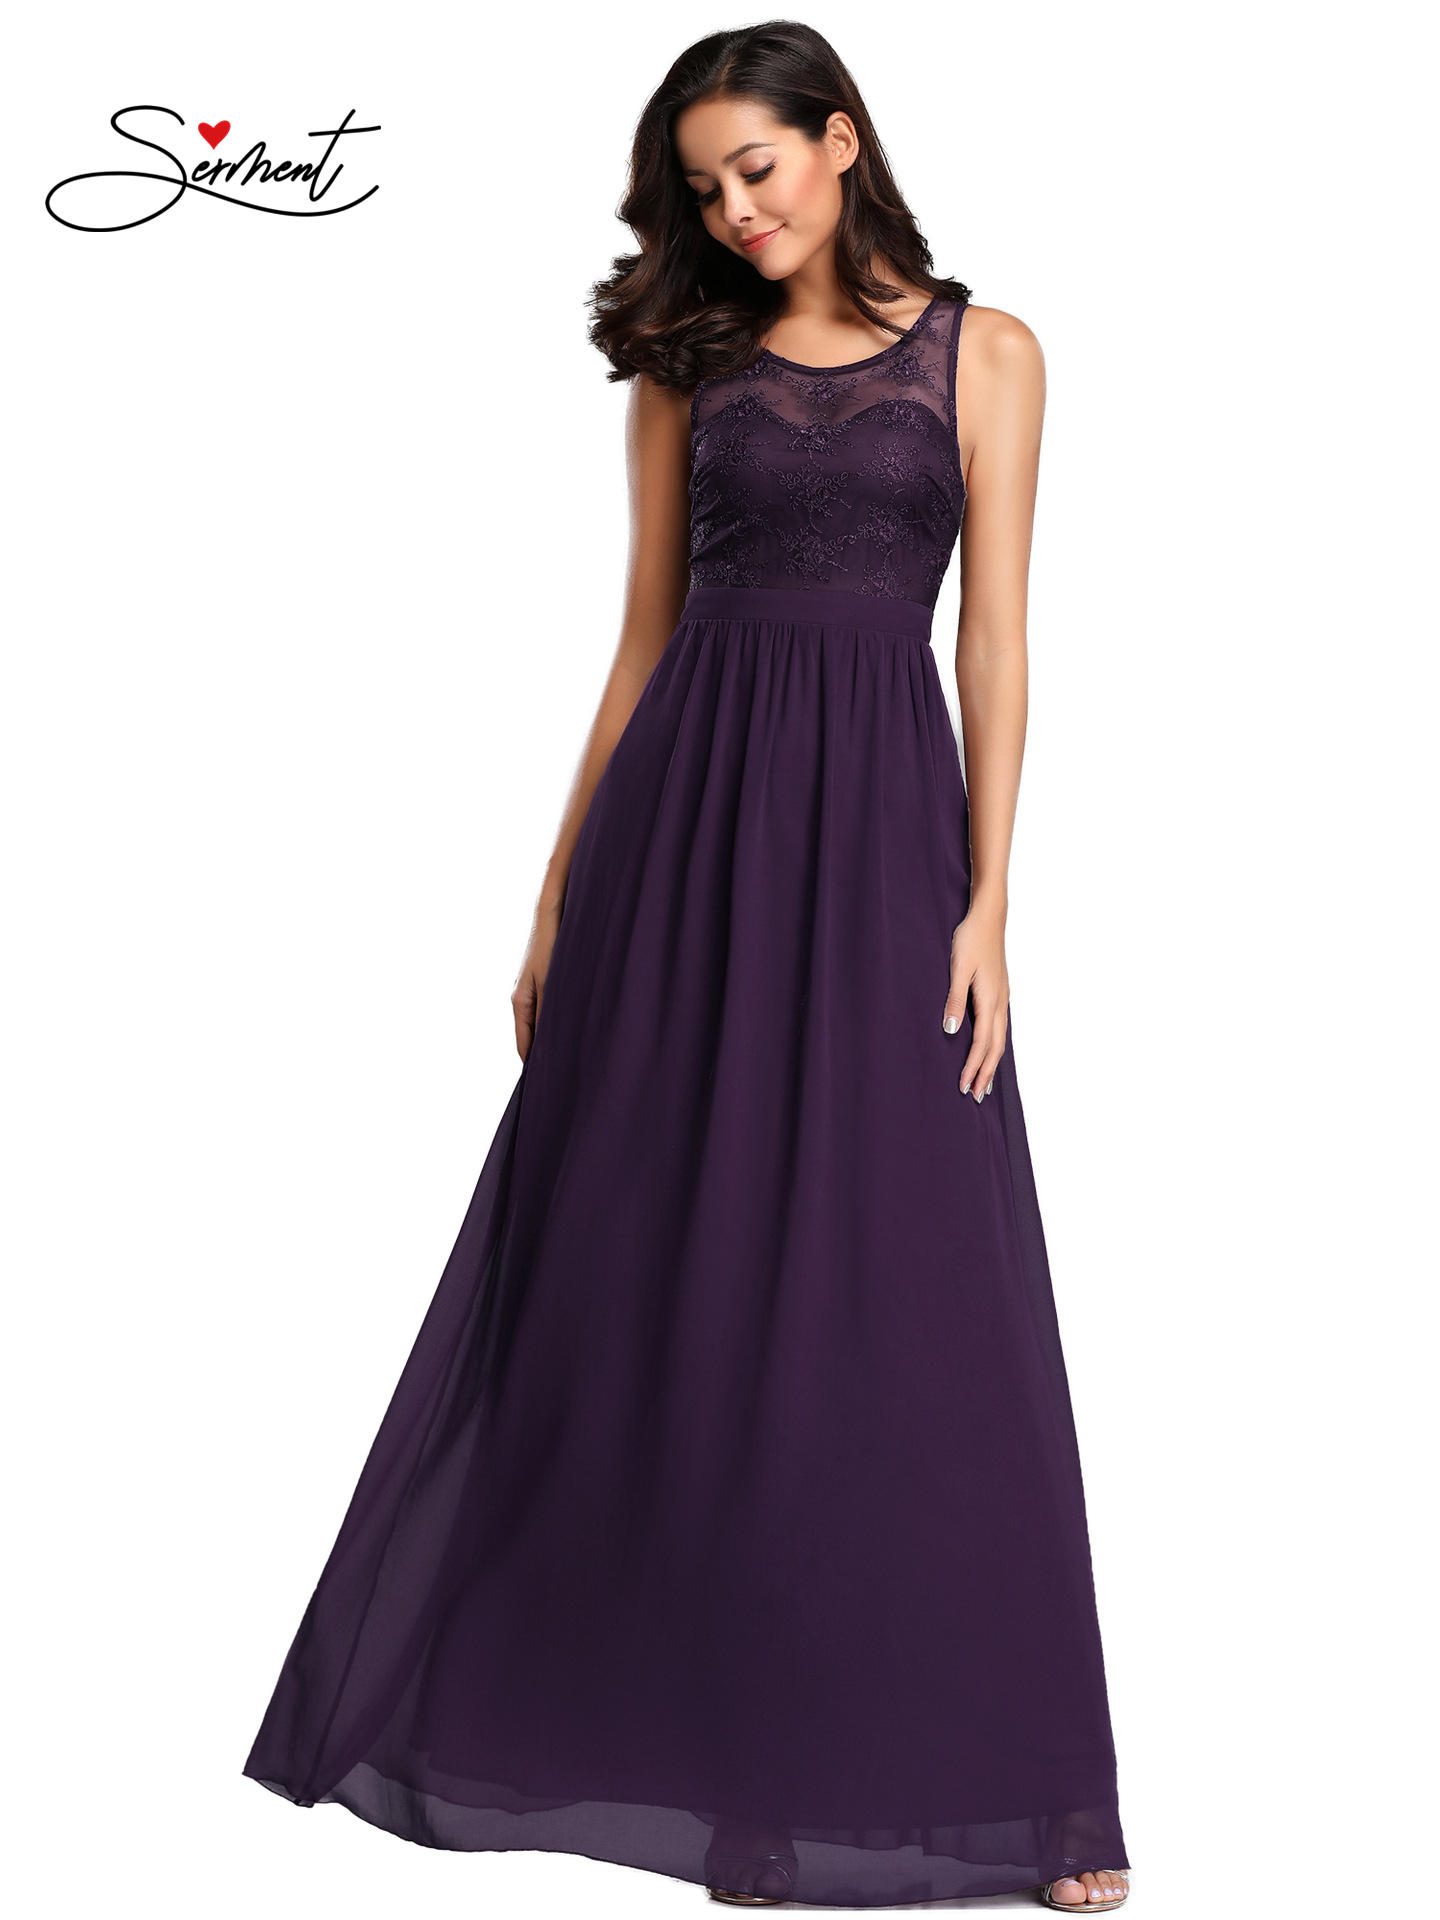 OLLYMURS New Elegant Woman Evening Gown Purple Chiffon Elegant Sleeveless Evening Dress Suitable for Formal Parties